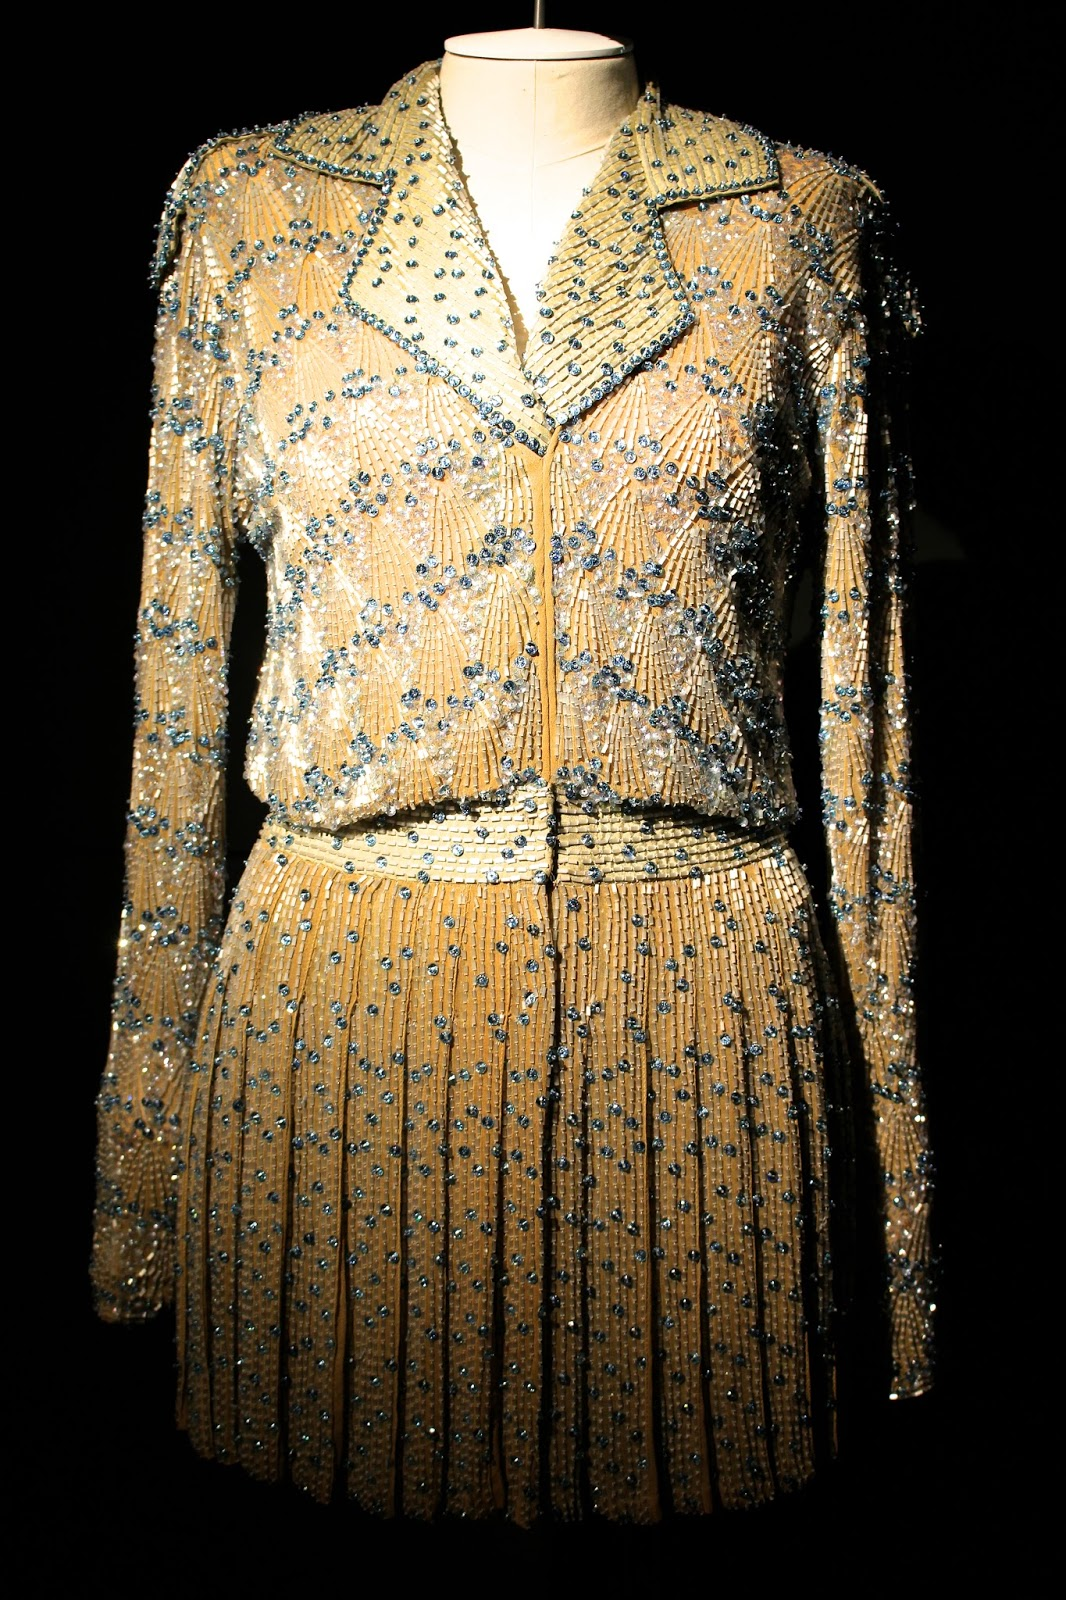 Dressed by Angels Exhibition Blog Review